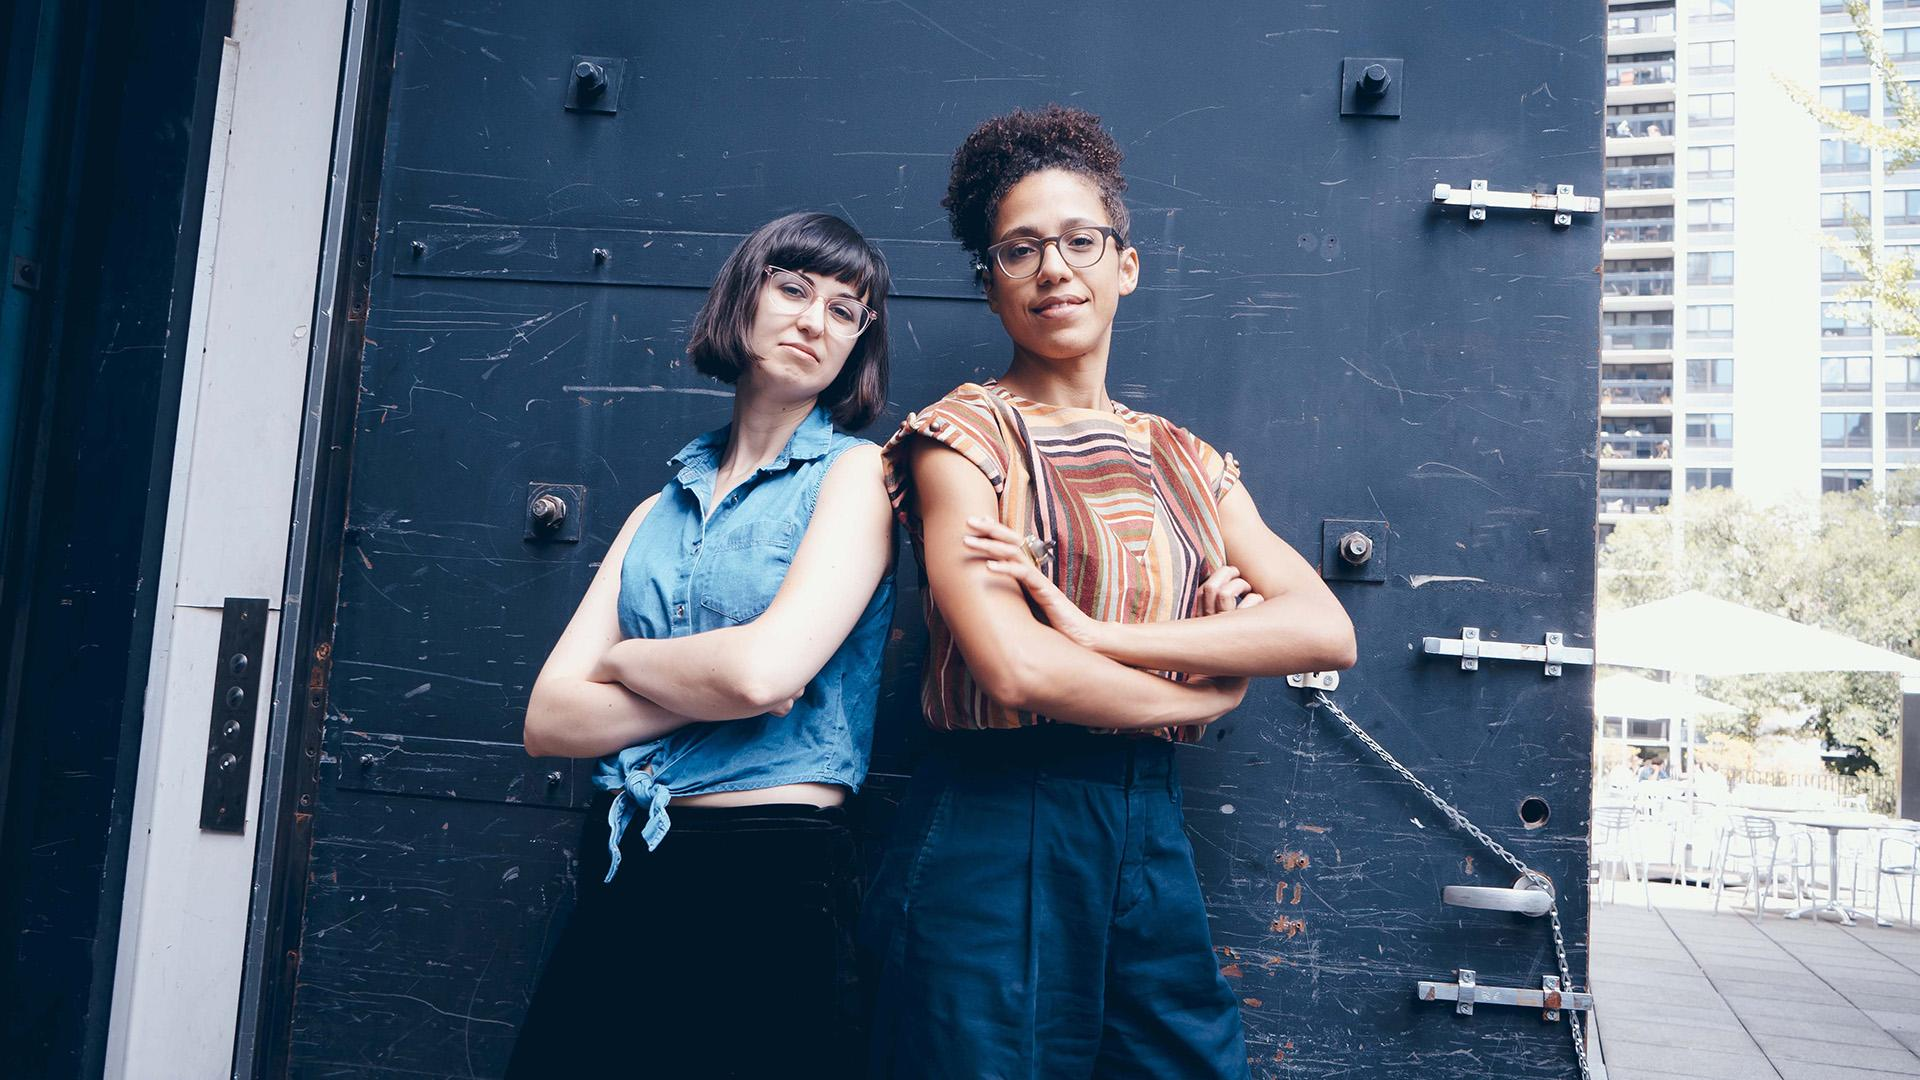 The Storefront Project is curated by Prop Thtr Artistic Director Olivia Lilley, left, and MCA Associate Curator of Performance Tara Aisha Willis. (Photo by Matthew Gregory Hollis)